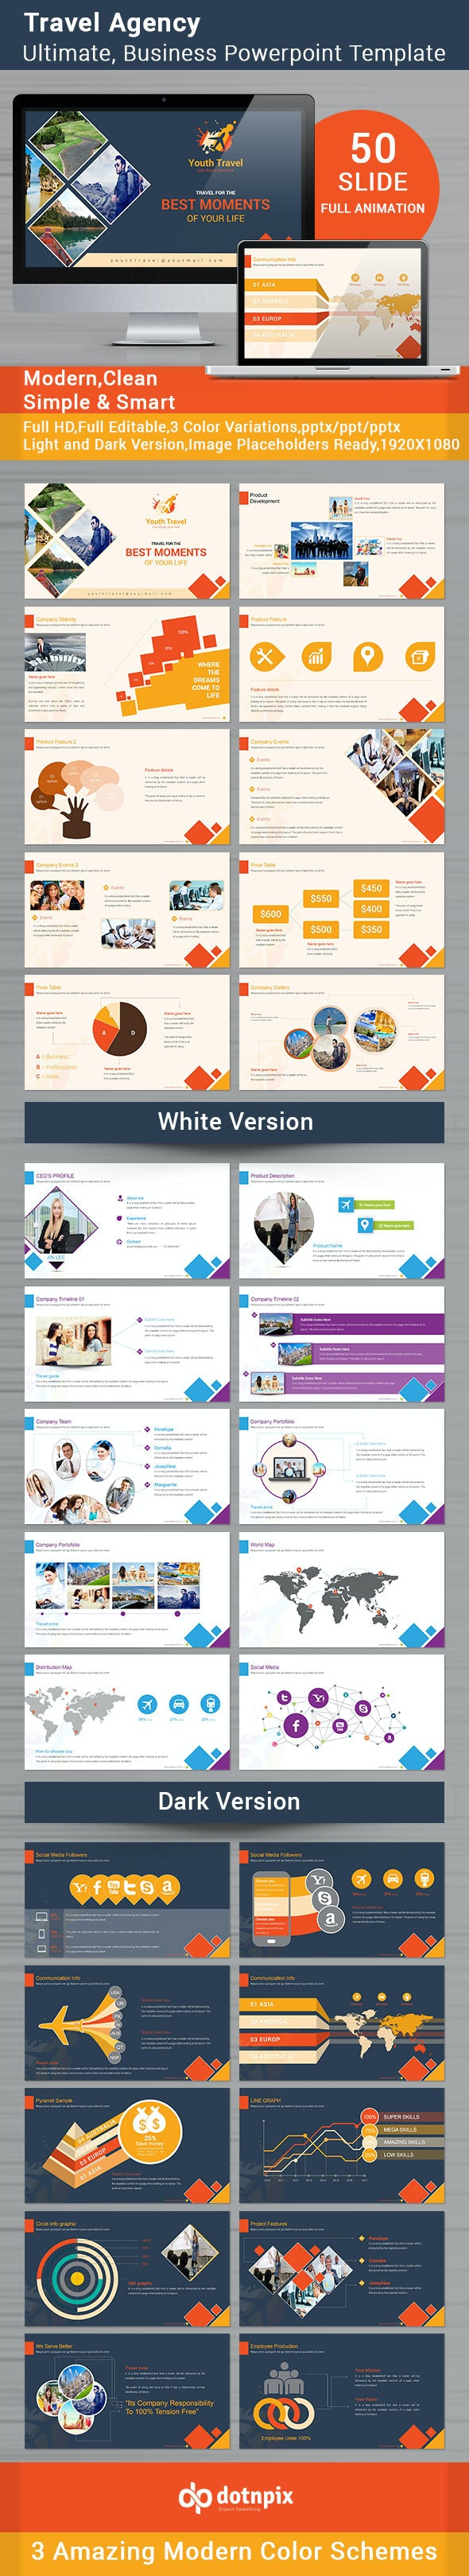 Travel Agency Powerpoint Template - Business PowerPoint Templates